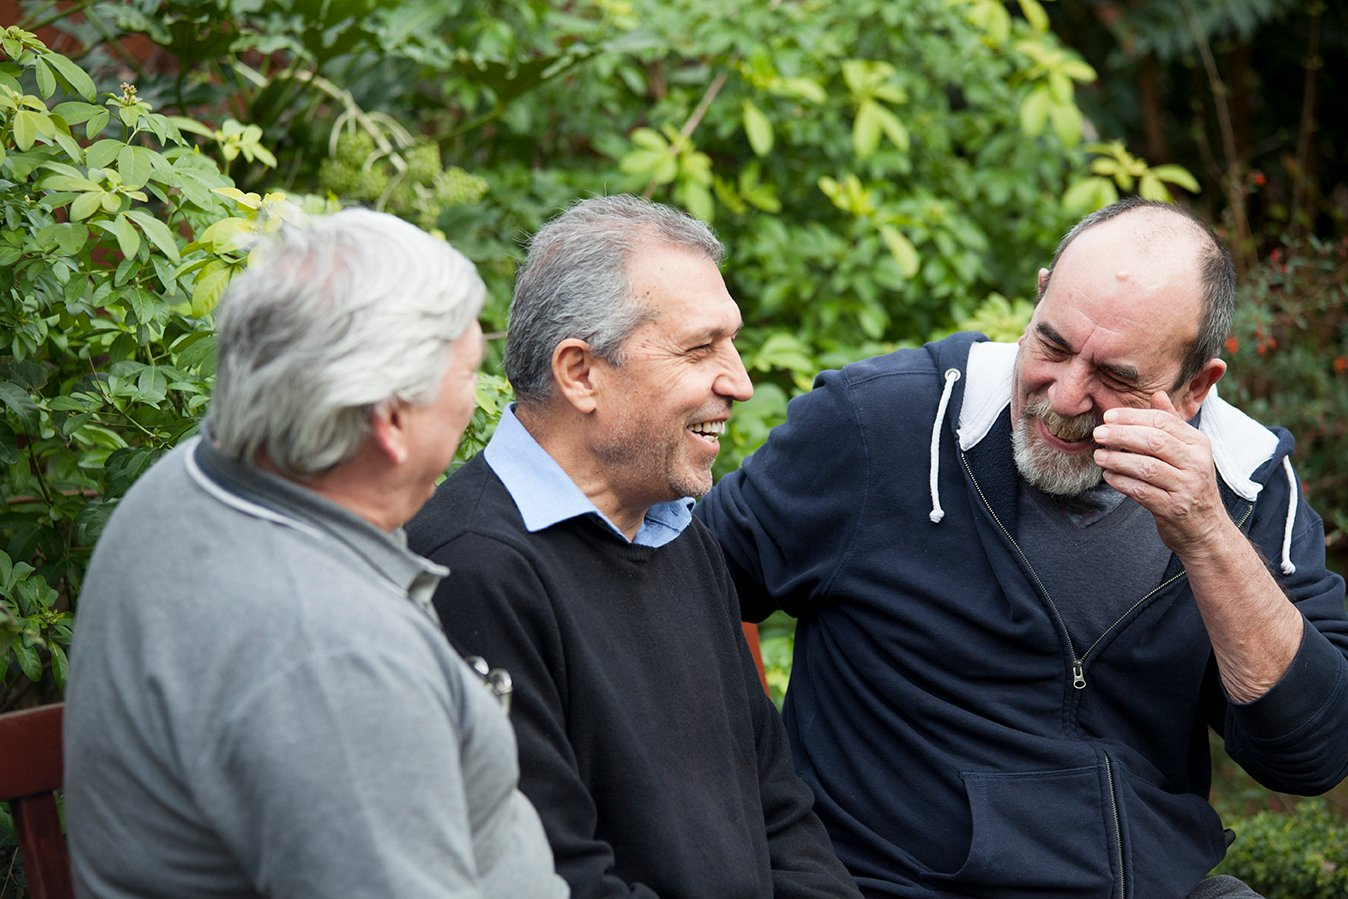 Male carers enjoying making new connections during their National Garden Scheme visit